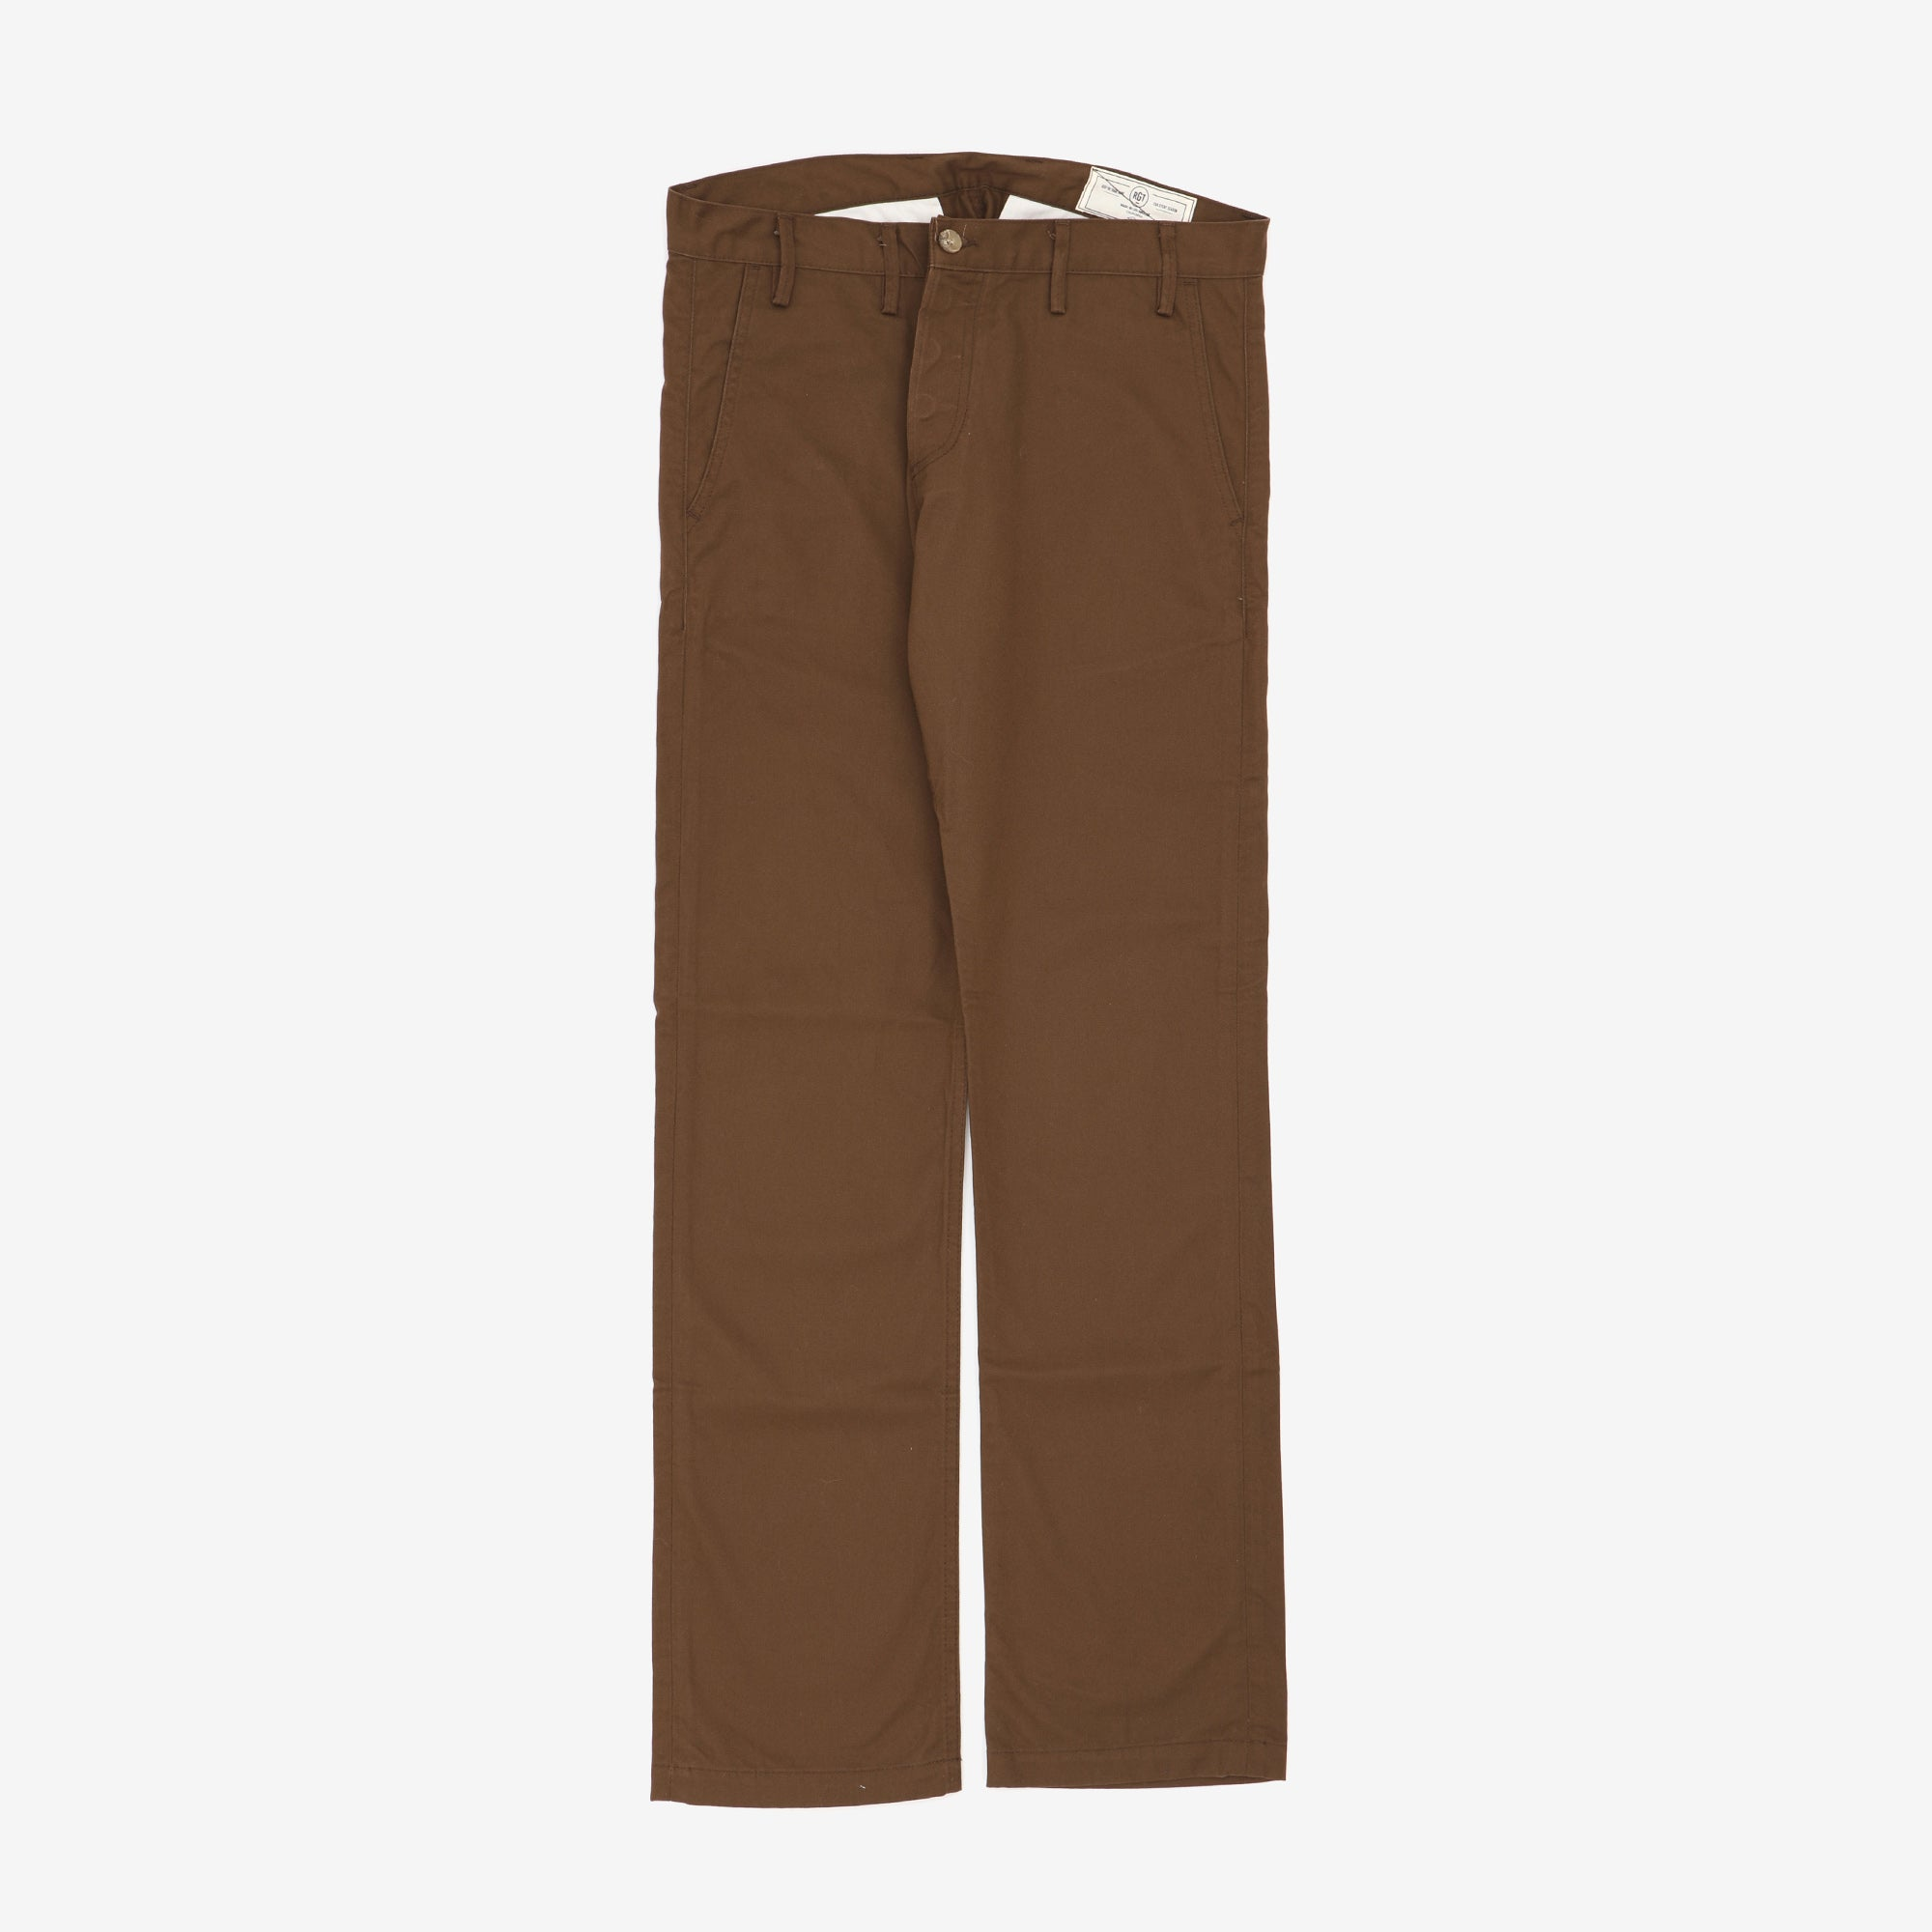 9oz Twill Officer Trousers